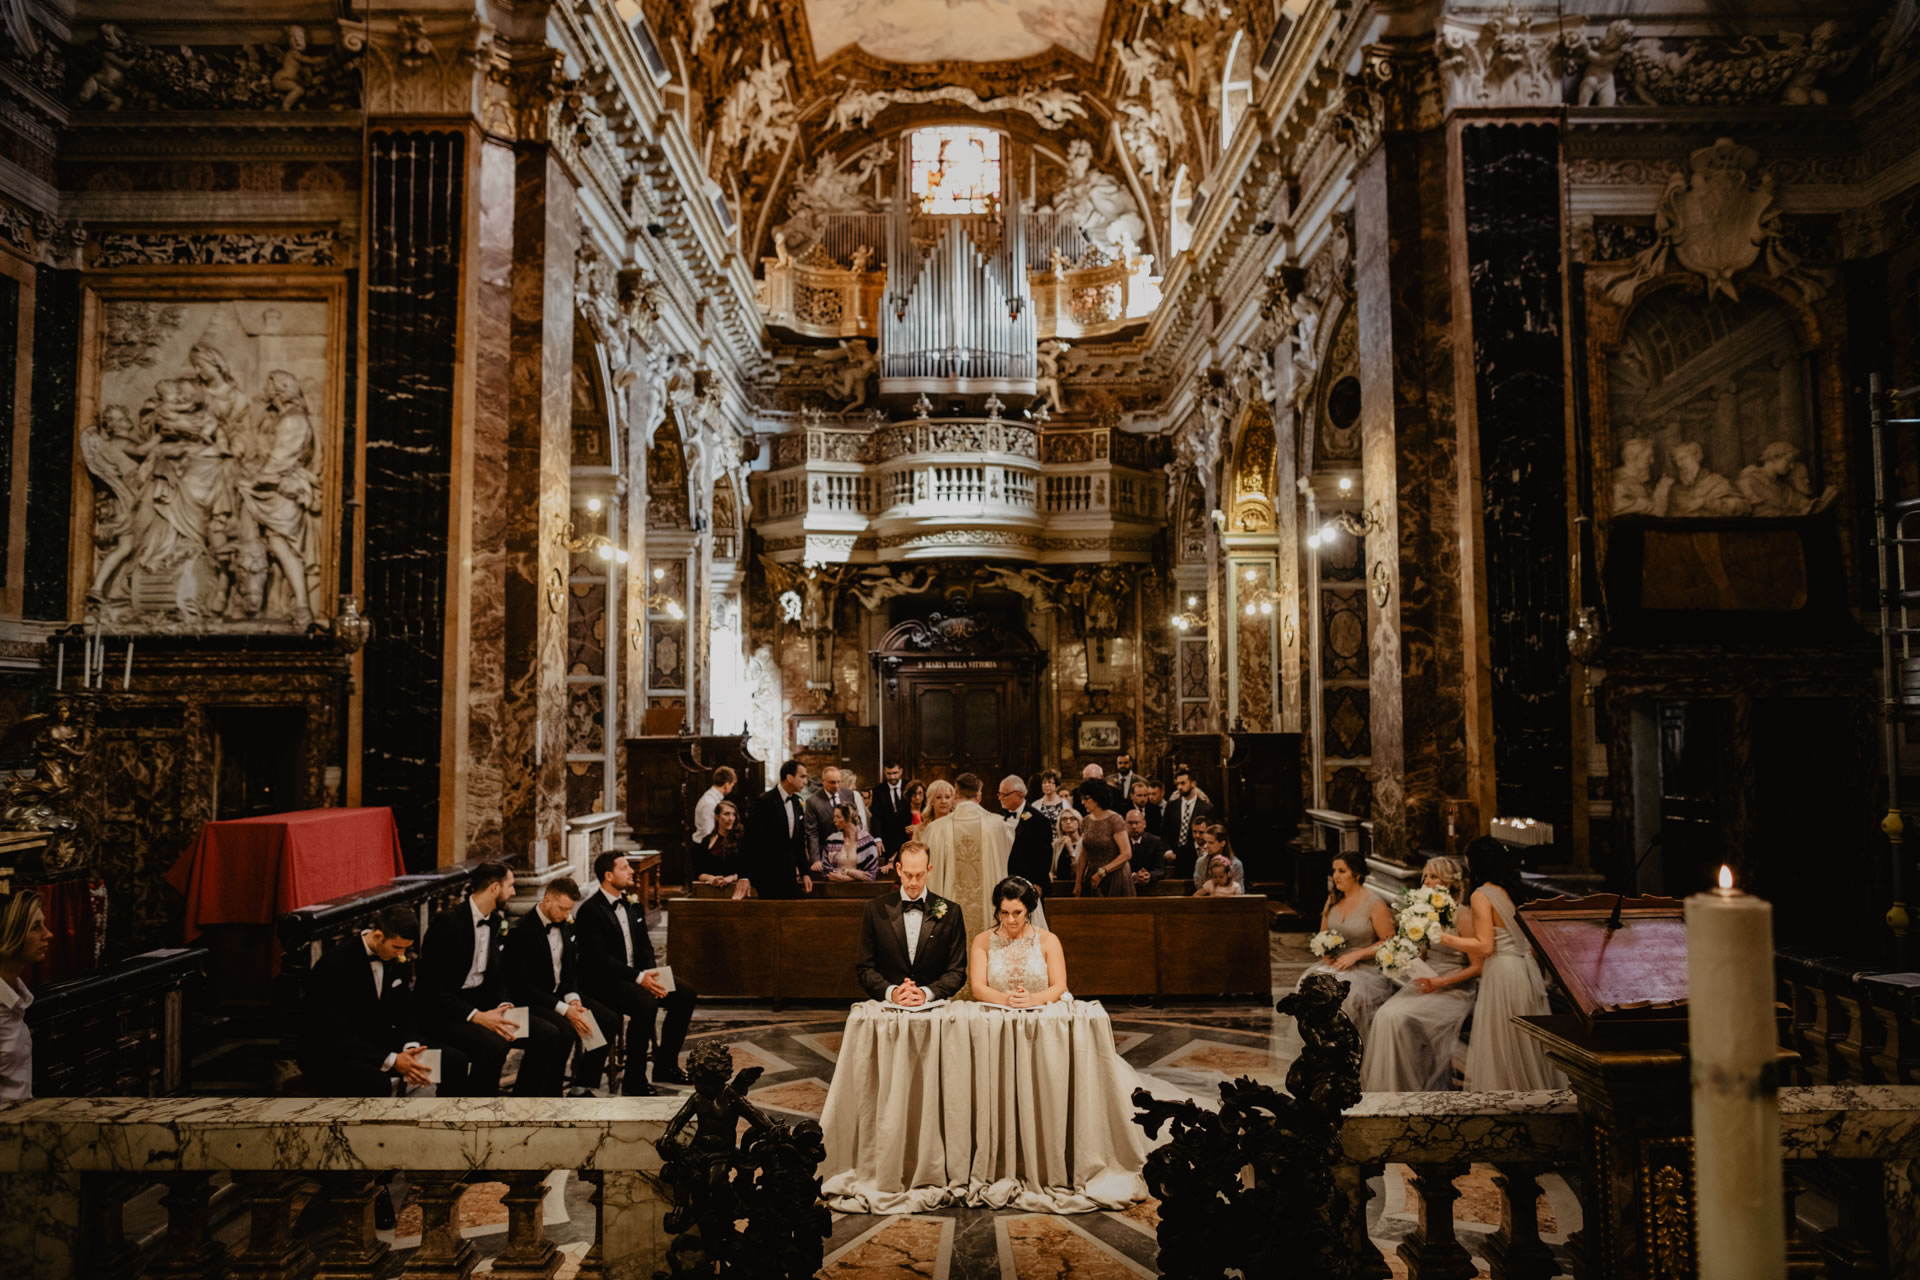 - 21 :: A breath-taking wedding in Rome, the eternal city :: Luxury wedding photography - 20 ::  - 21